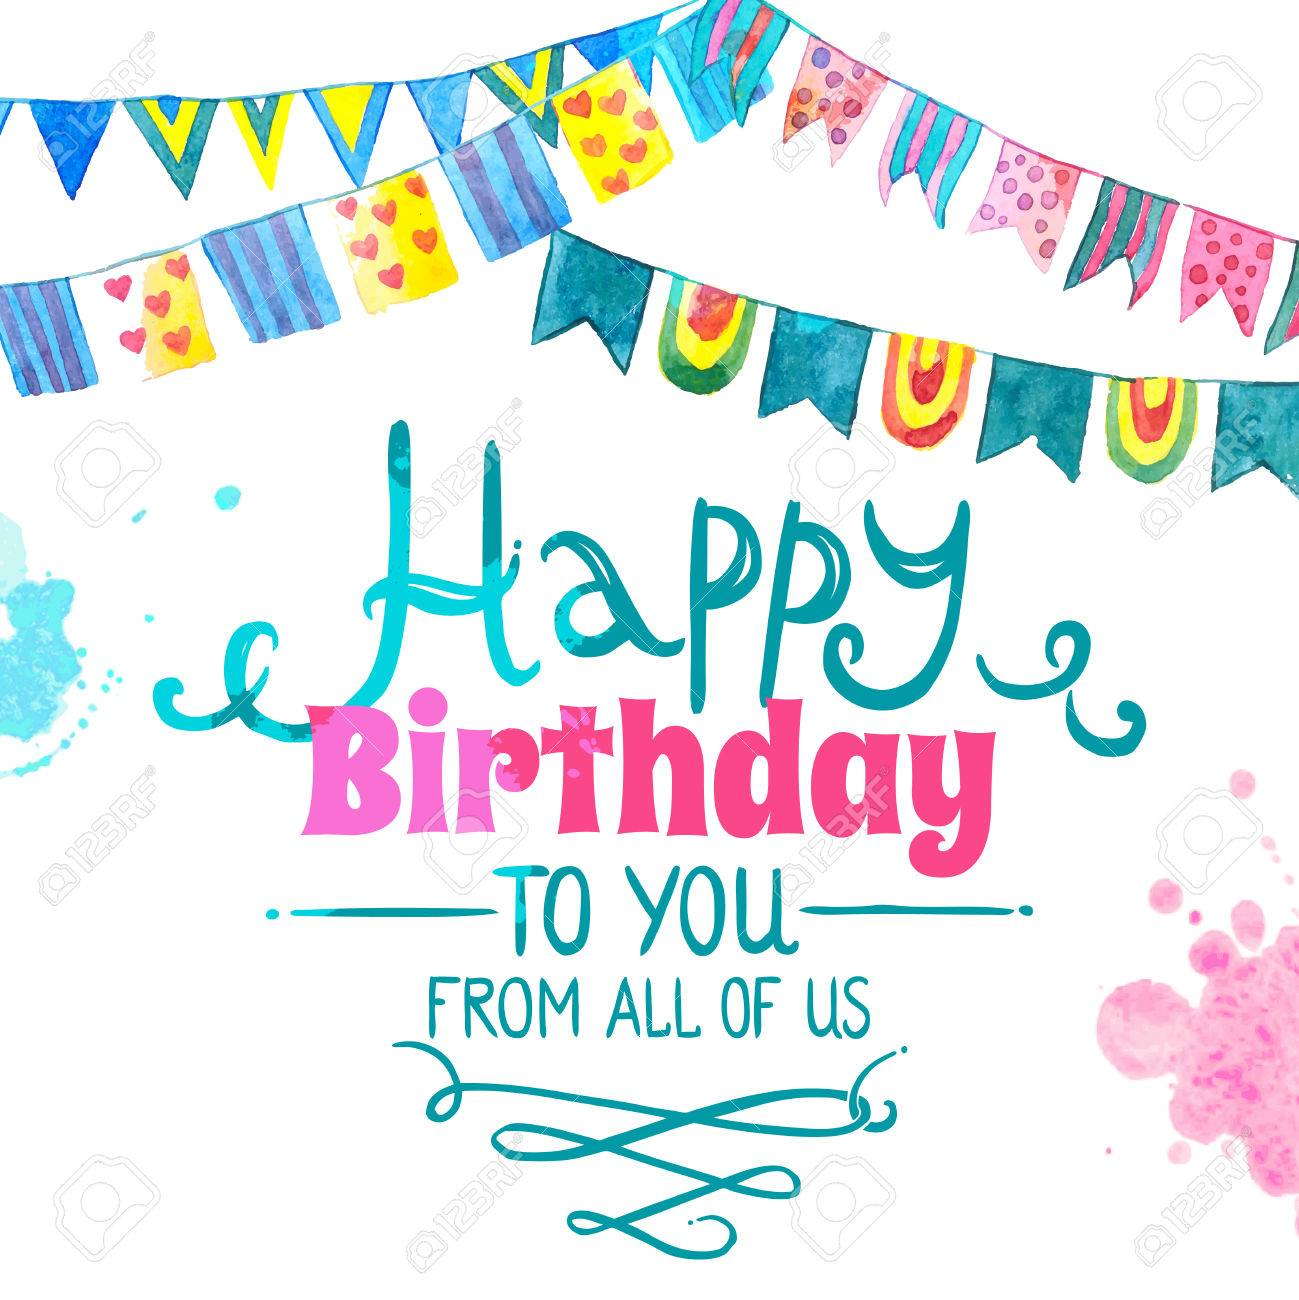 birthday wishes from all of us card ; 44389602-happy-birthday-greeting-card-with-water-color-flag-garland-vector-illustration